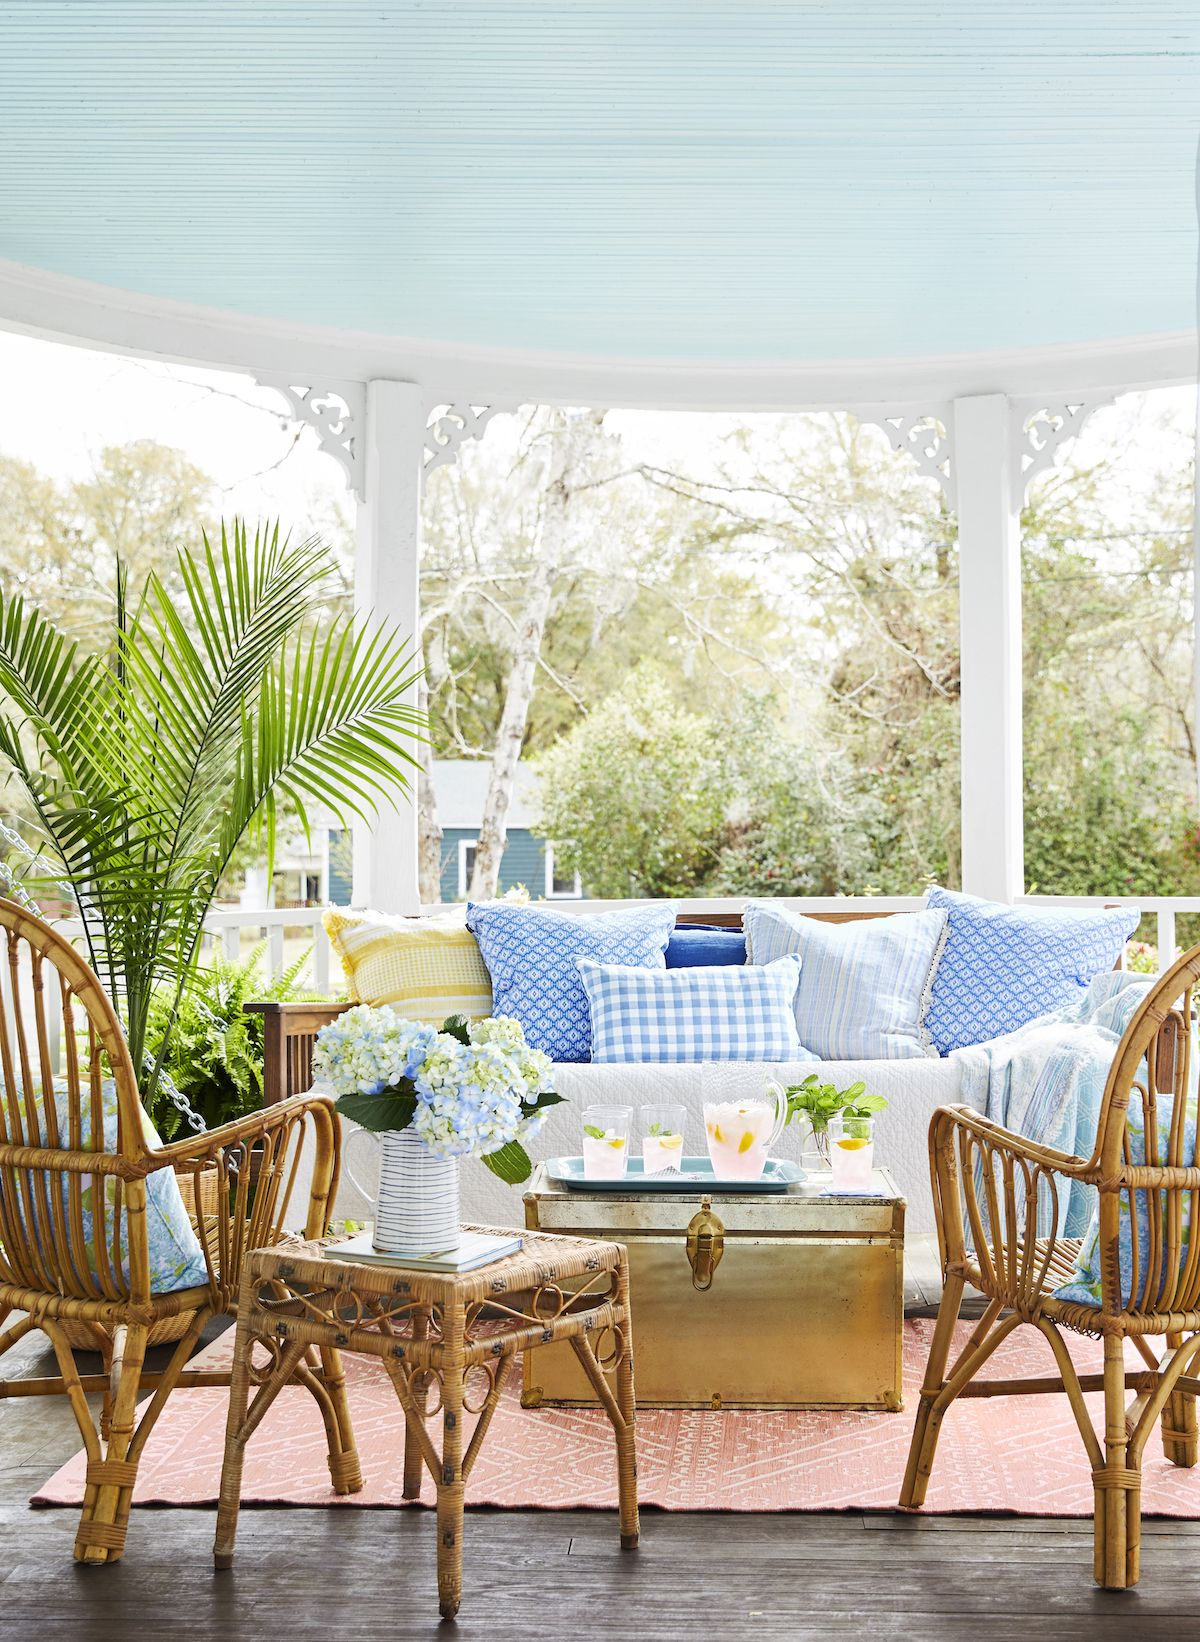 41 Best Patio And Porch Design Ideas Decorating Your Outdoor Space